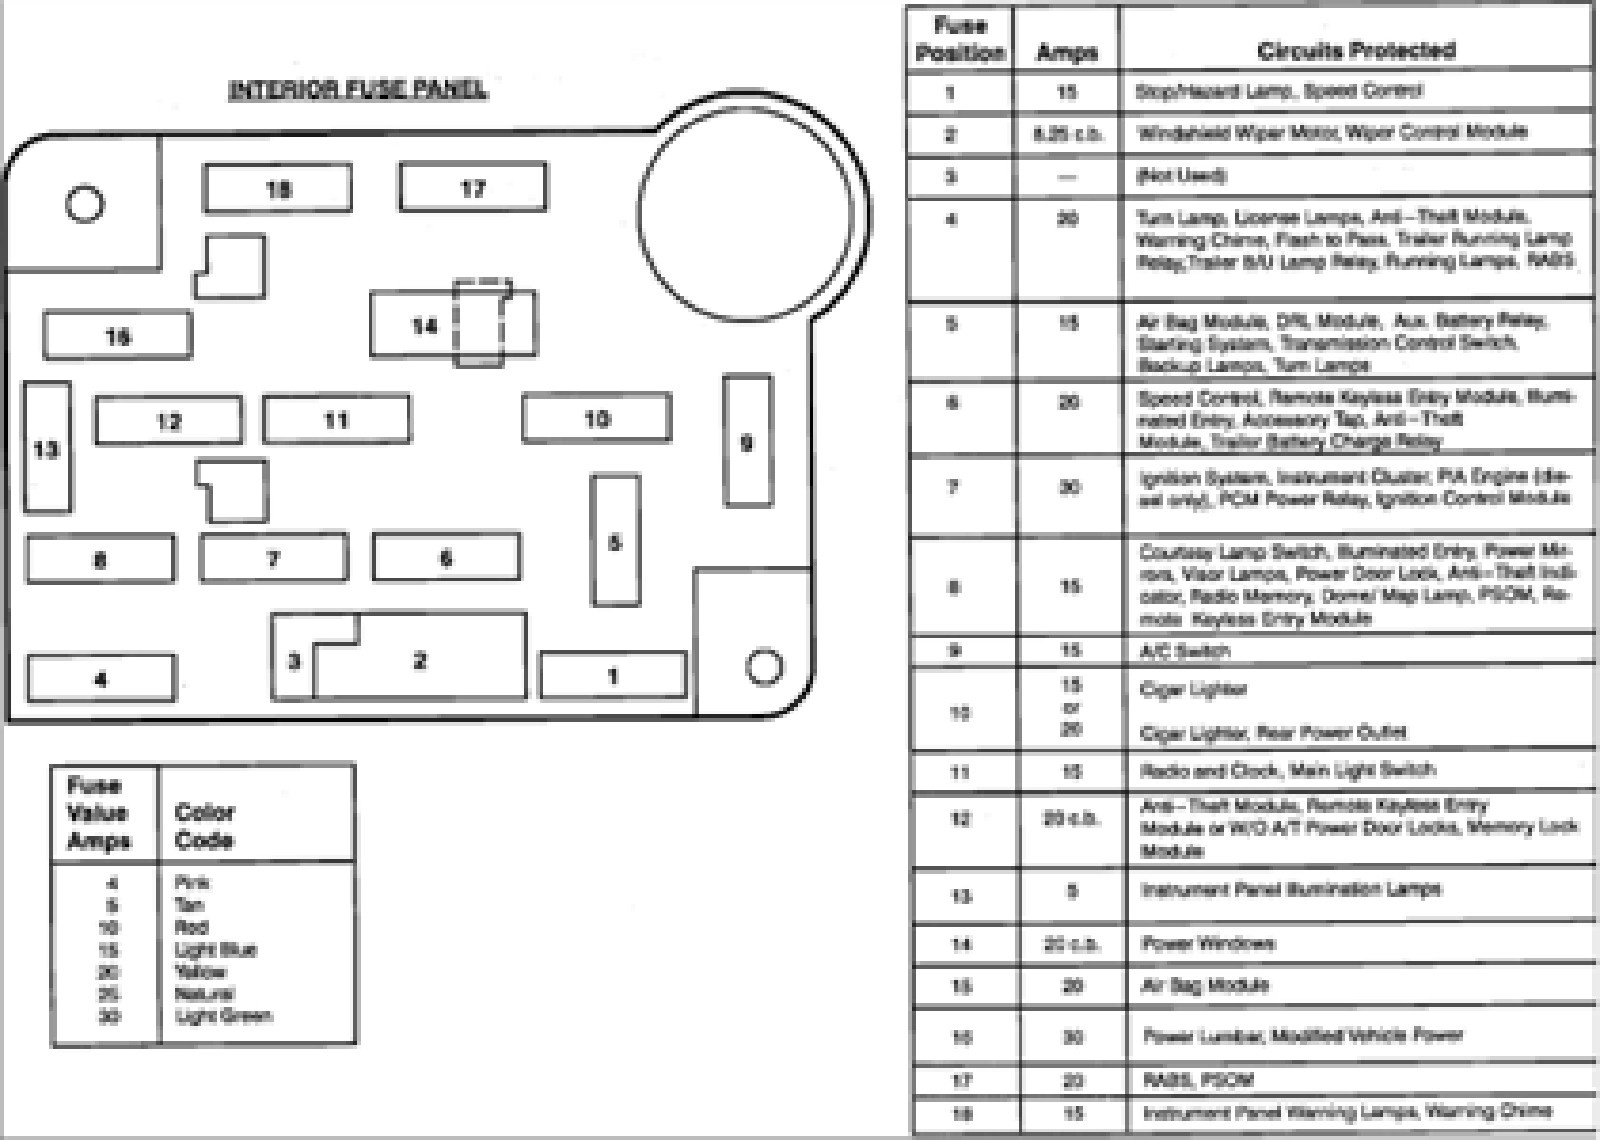 1989 ford ranger fuse box diagram detailed schematics diagram rh  lelandlutheran com 2001 ford ranger fuse box diagram 2001 ford ranger fuse  box diagram